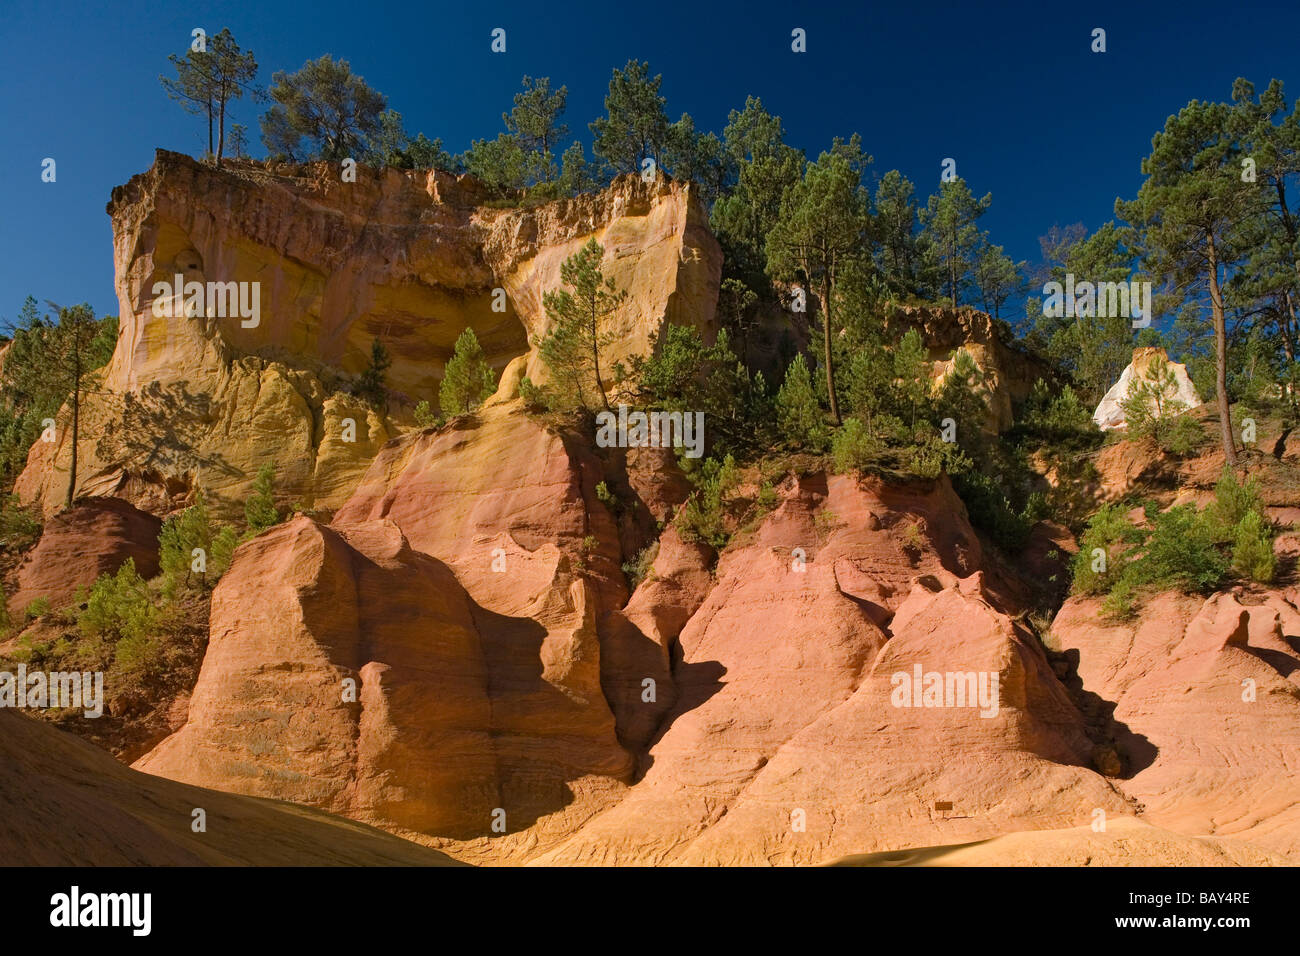 Ochre quarry in the sunlight, Roussillon, Vaucluse, Provence, France - Stock Image